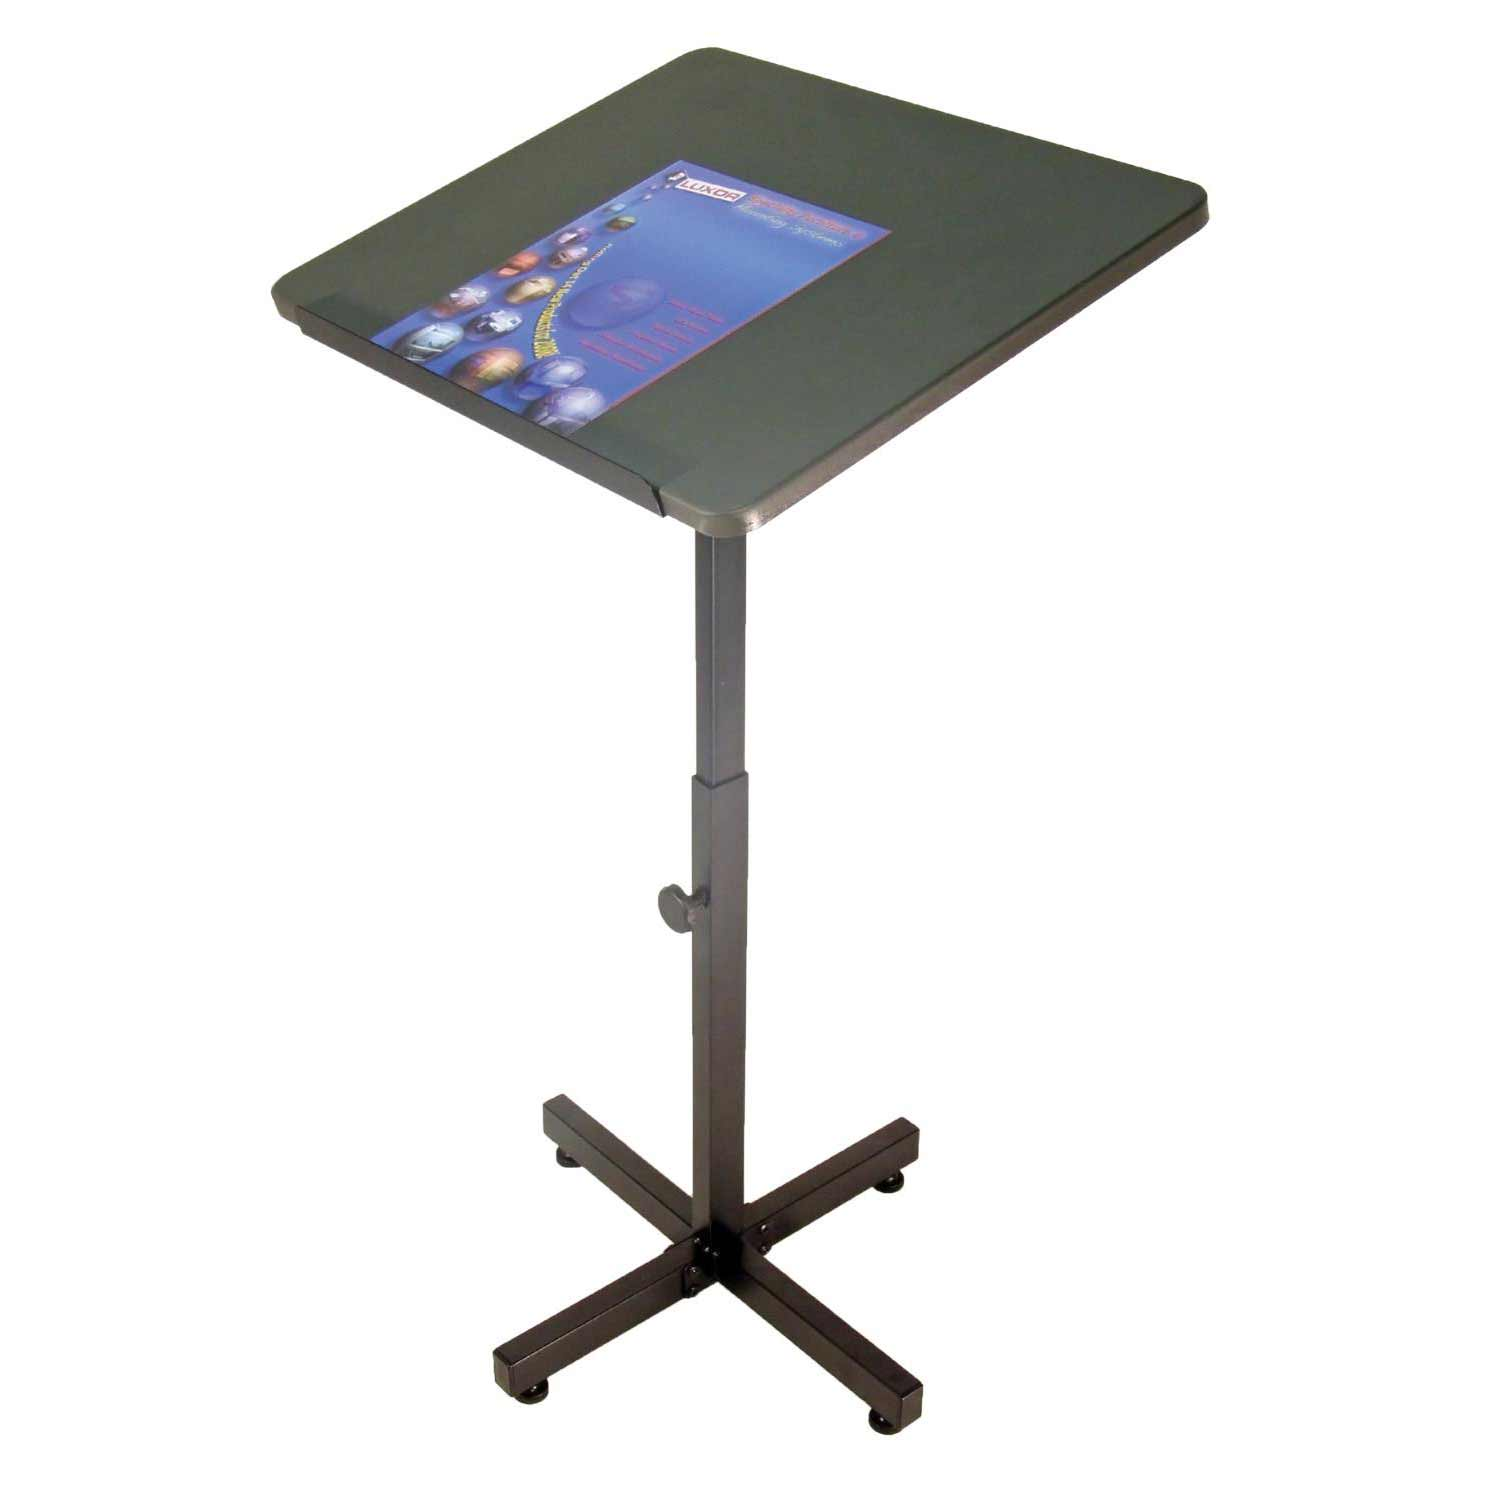 Luxor Prestige Adjustable Height Laptop Stands